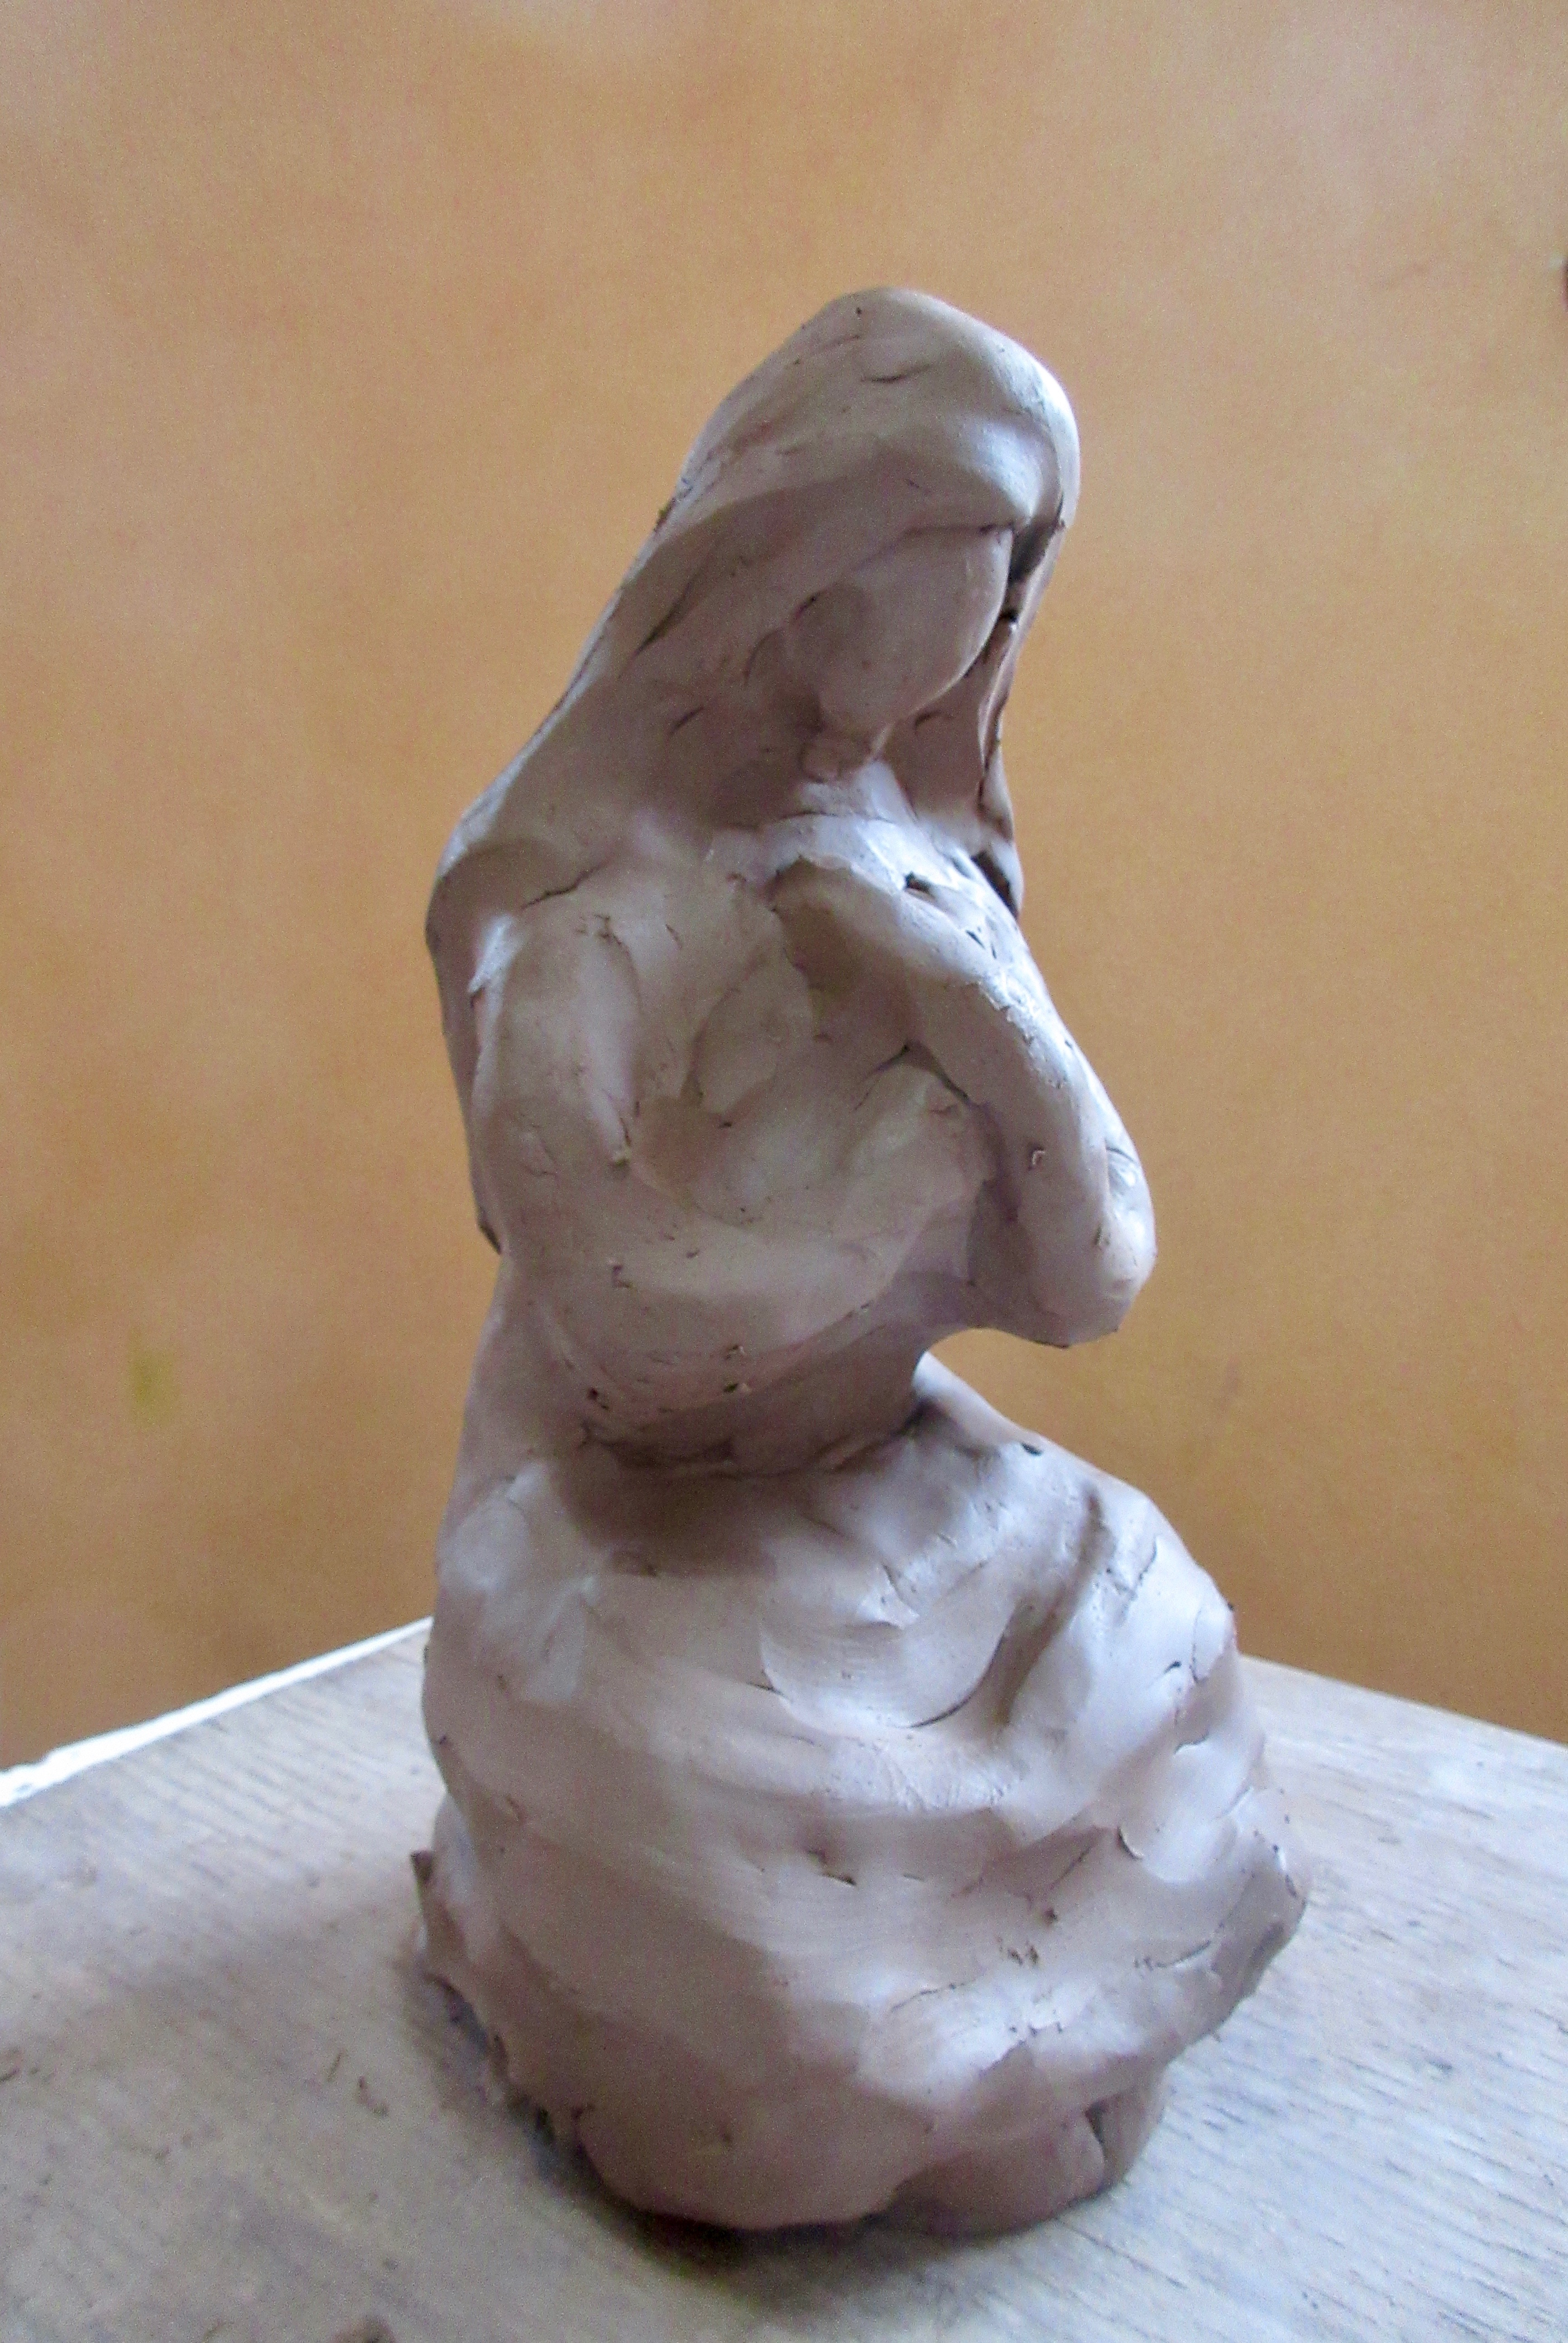 a clay figuring with crossed arms